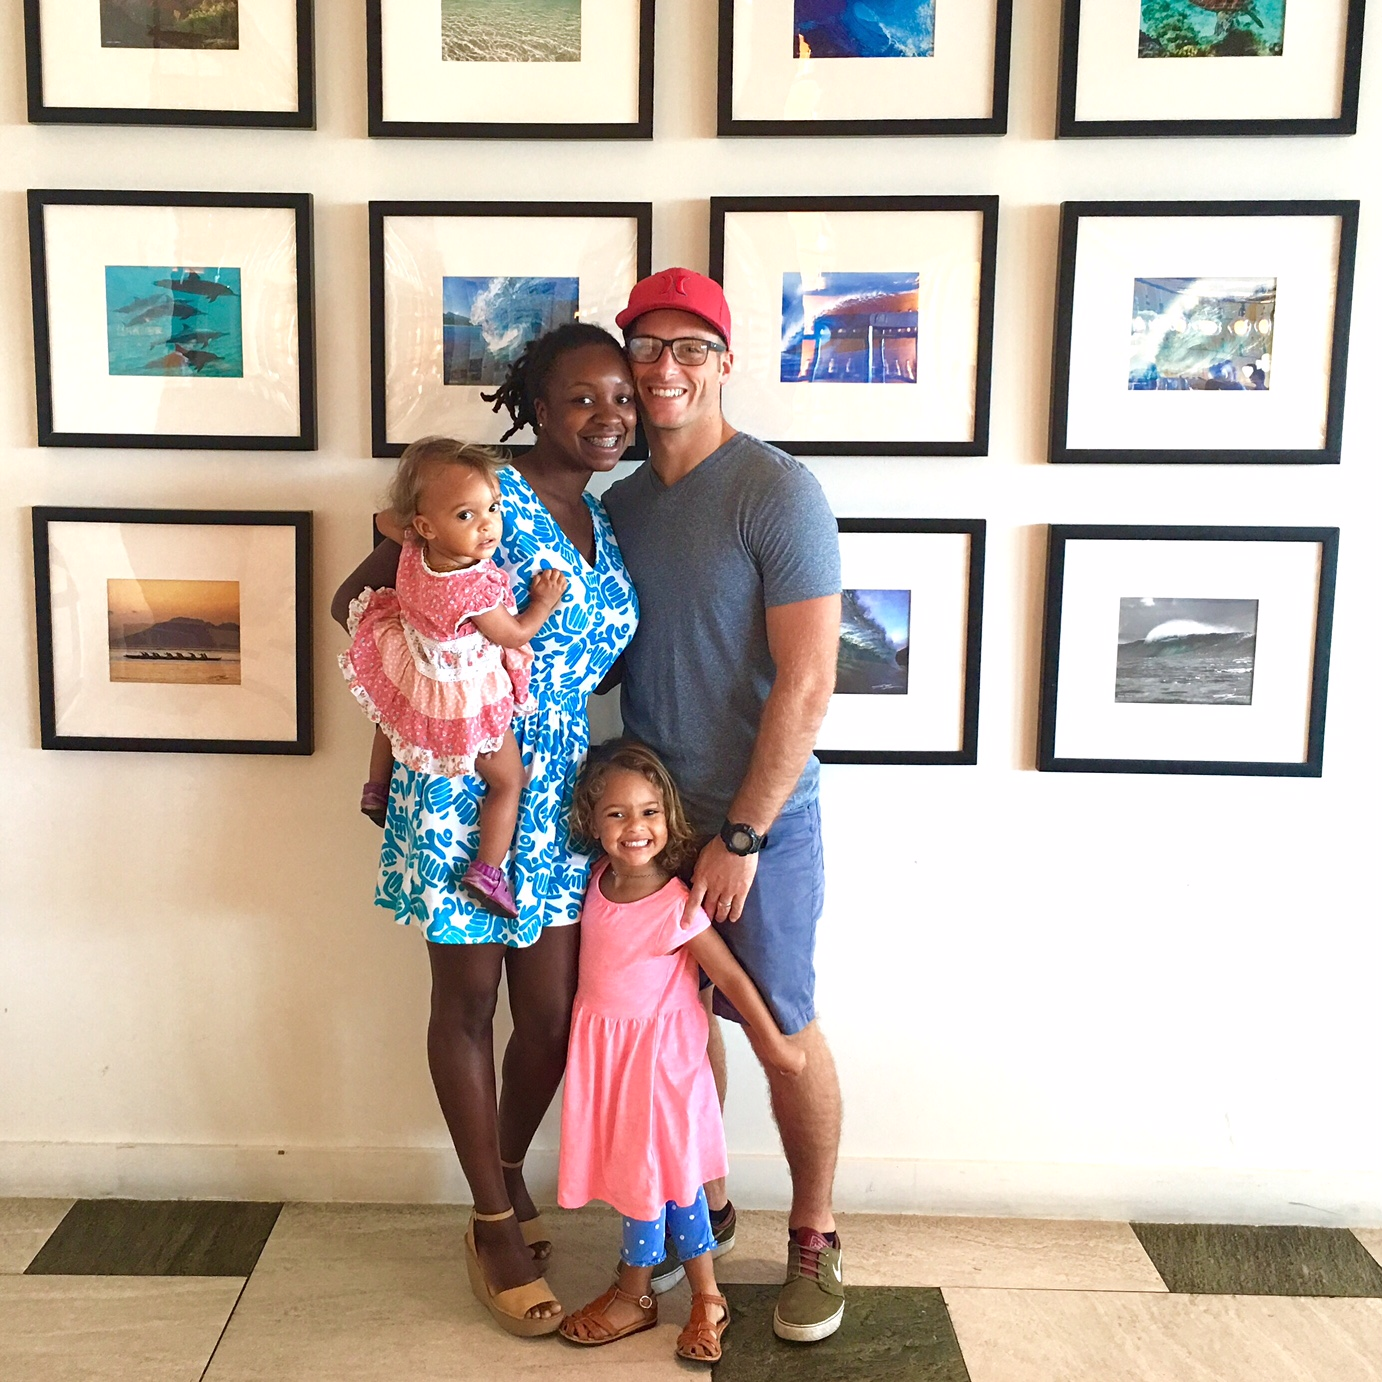 Anjelica Malone and family